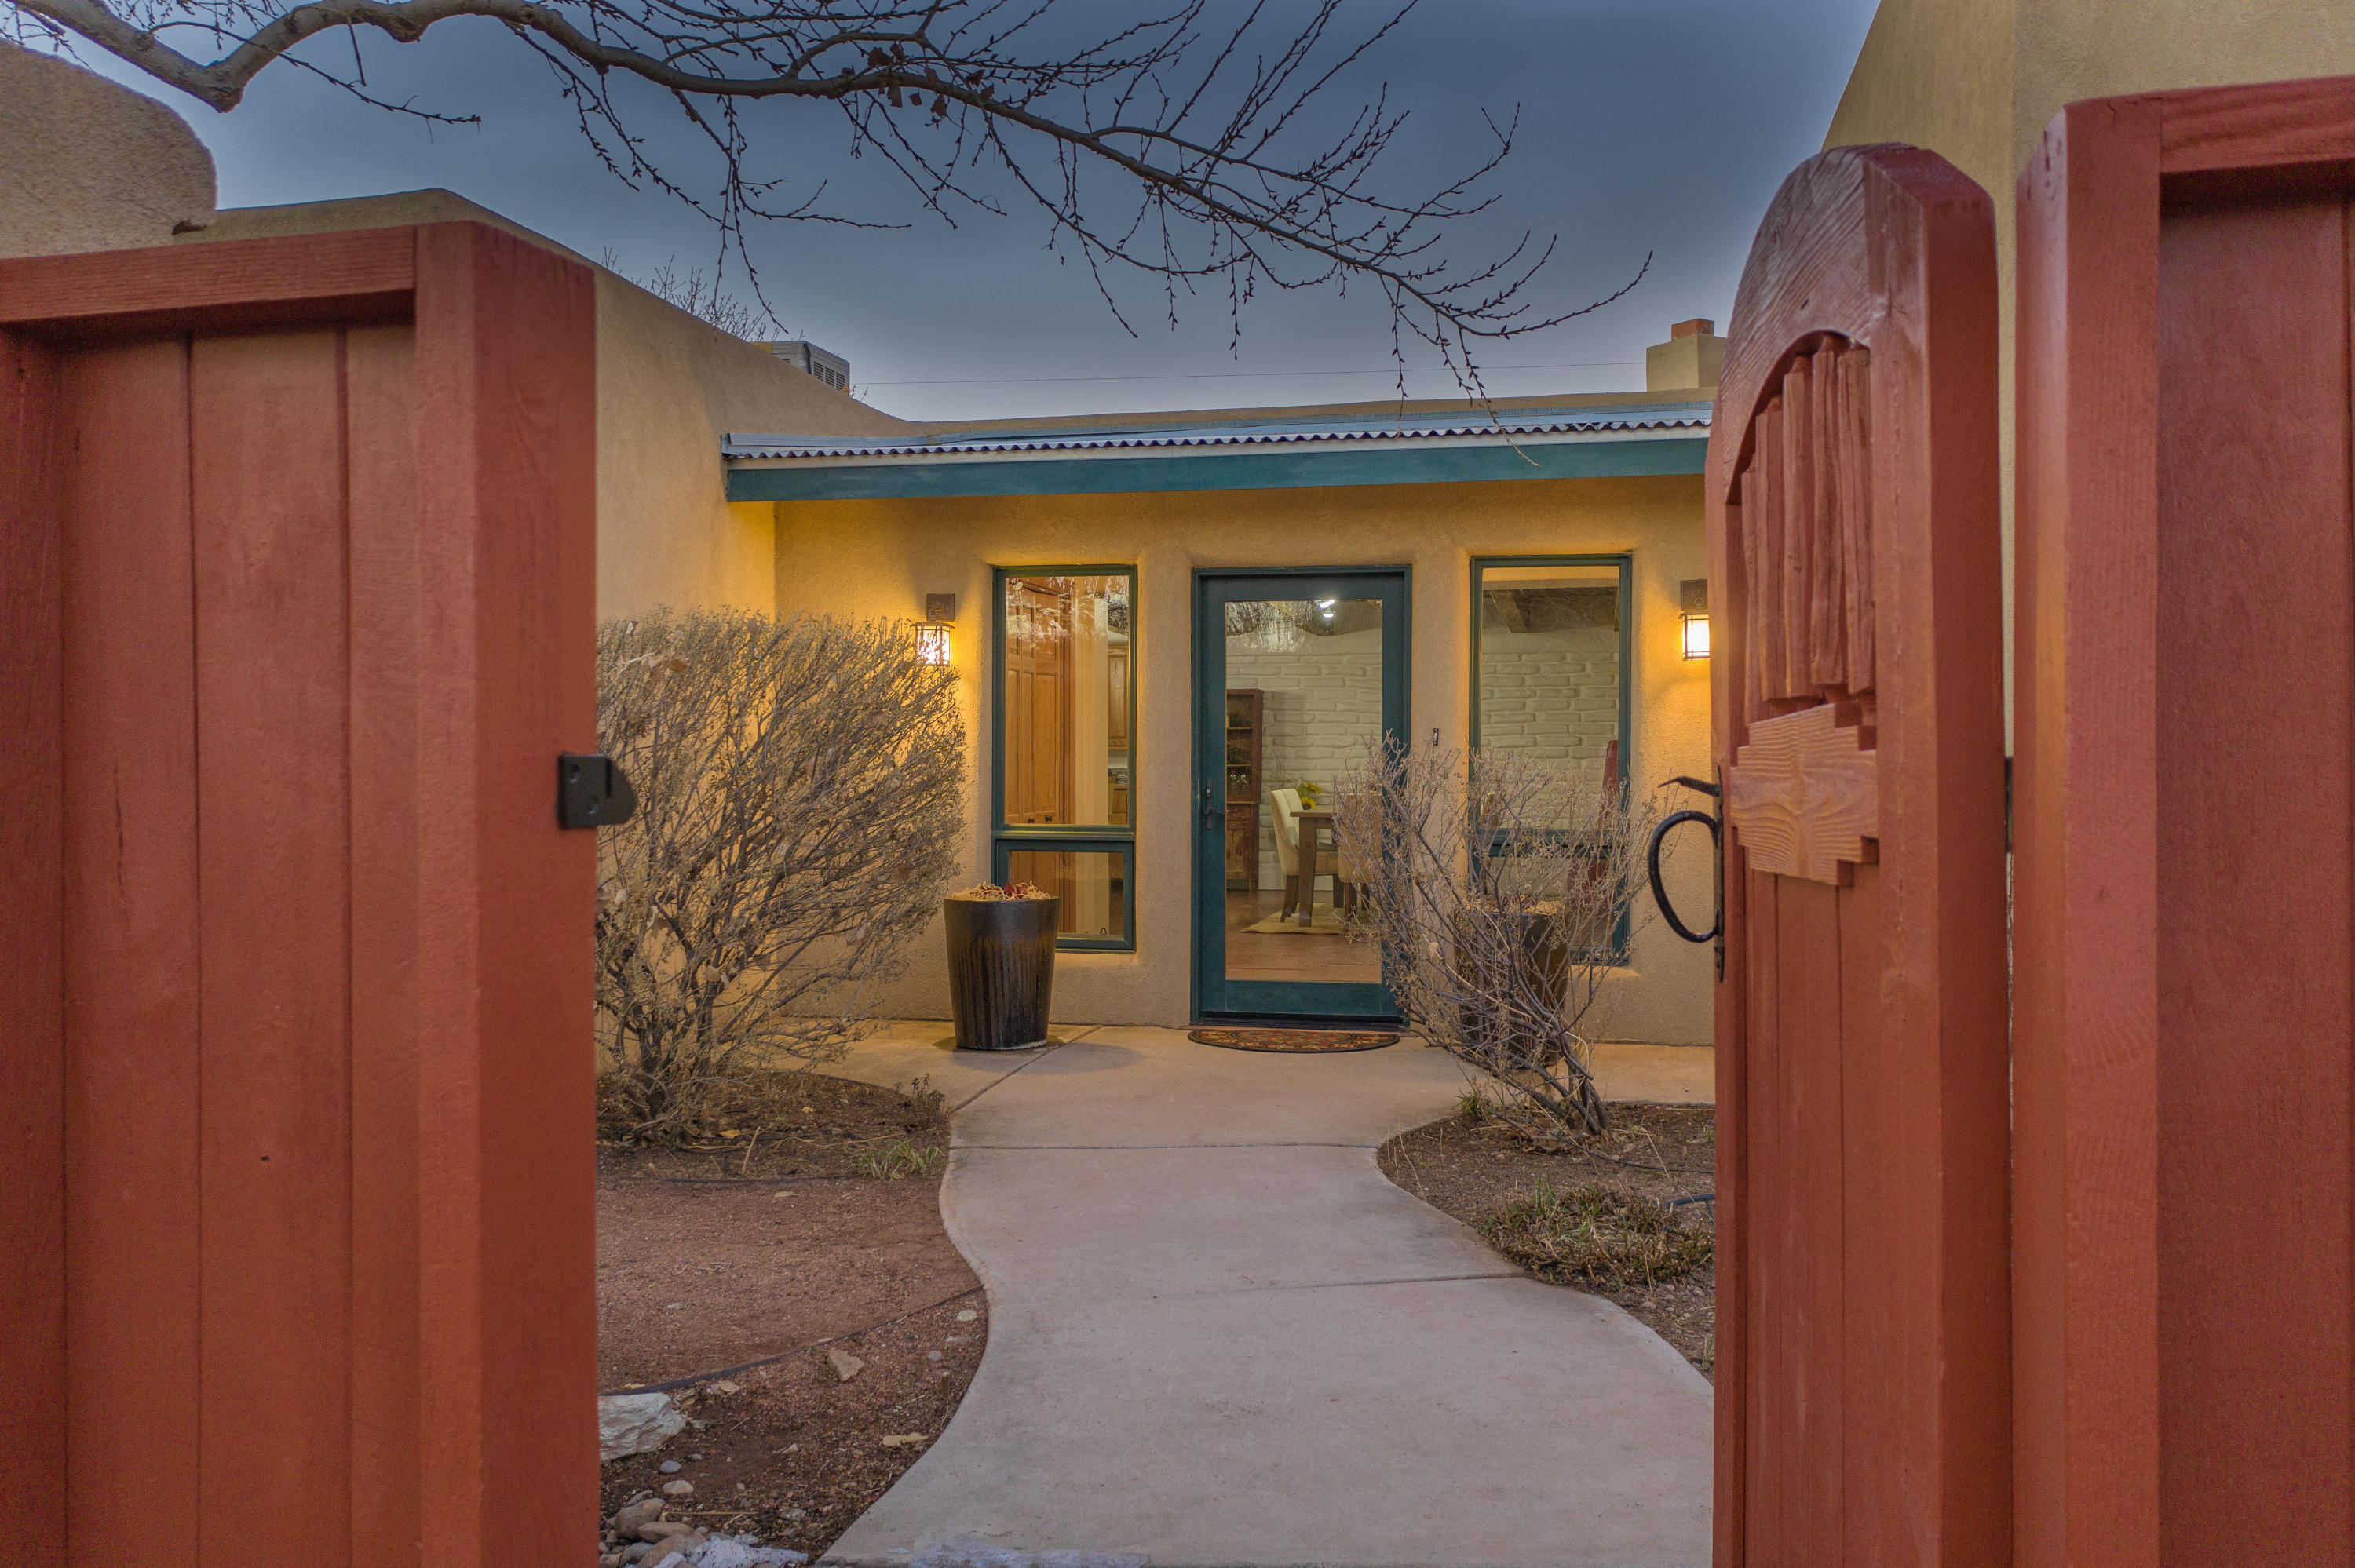 Come home to your piece of Santa Fe Style nestled in the desirable north valley, conveniently located and on a corner lot. This hidden gem has access to the acequia, w/proximity to the Bosque, Nature Center, Rio Grande River & miles of walk & bike paths! Located on the west side of Rio Grande Blvd, in a tranquil, peaceful setting. The home boasts a spacious & open floor plan with 2 large master bedrooms, 2 large baths, w/one large walk-in closet. Possible office space with separate entrance. Amenities include fresh paint, charming brick floors, radiant floor heat, formal dining room & island eating area, cozy up next to the 2 kiva fireplaces, owned solar, RV parking, enjoying your morning coffee on the covered patio and so much to fall in love with! 3DTour: http://bit.ly/2201Gabaldon